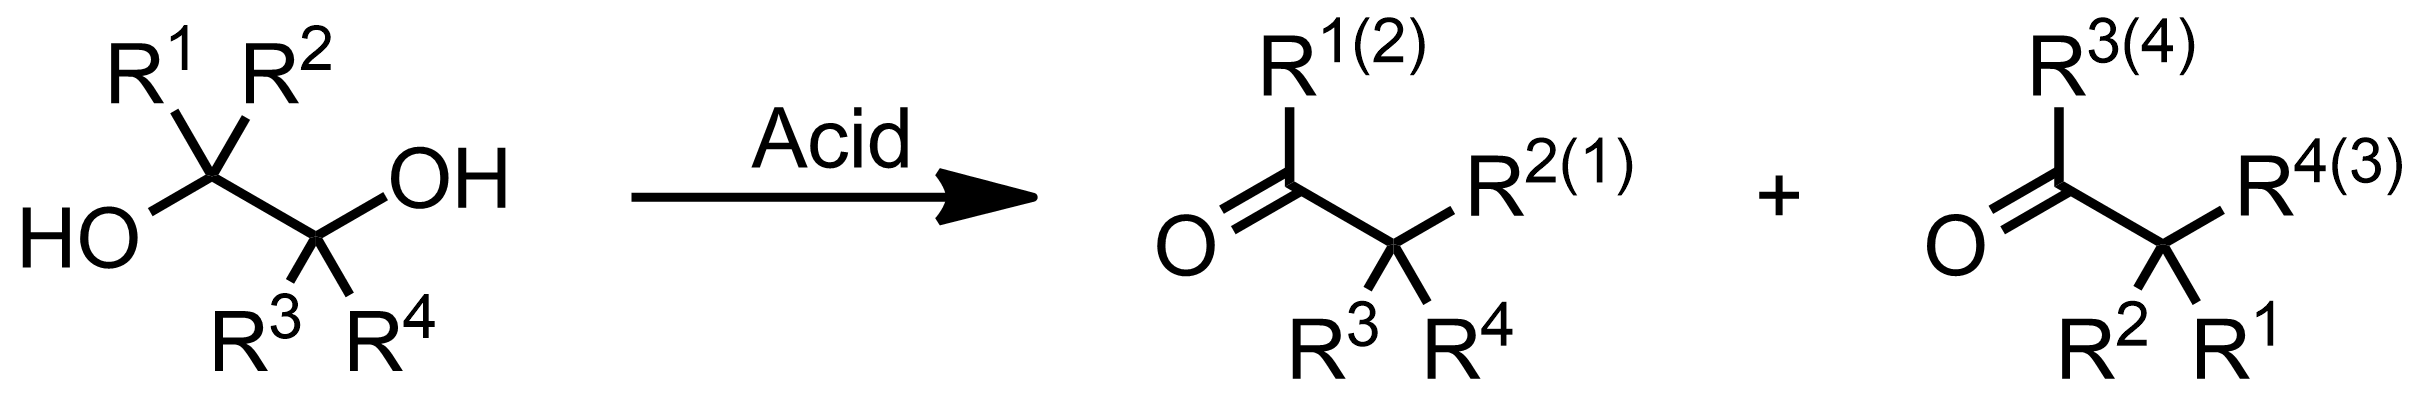 Schematic representation of the Pinacol Rearrangement.